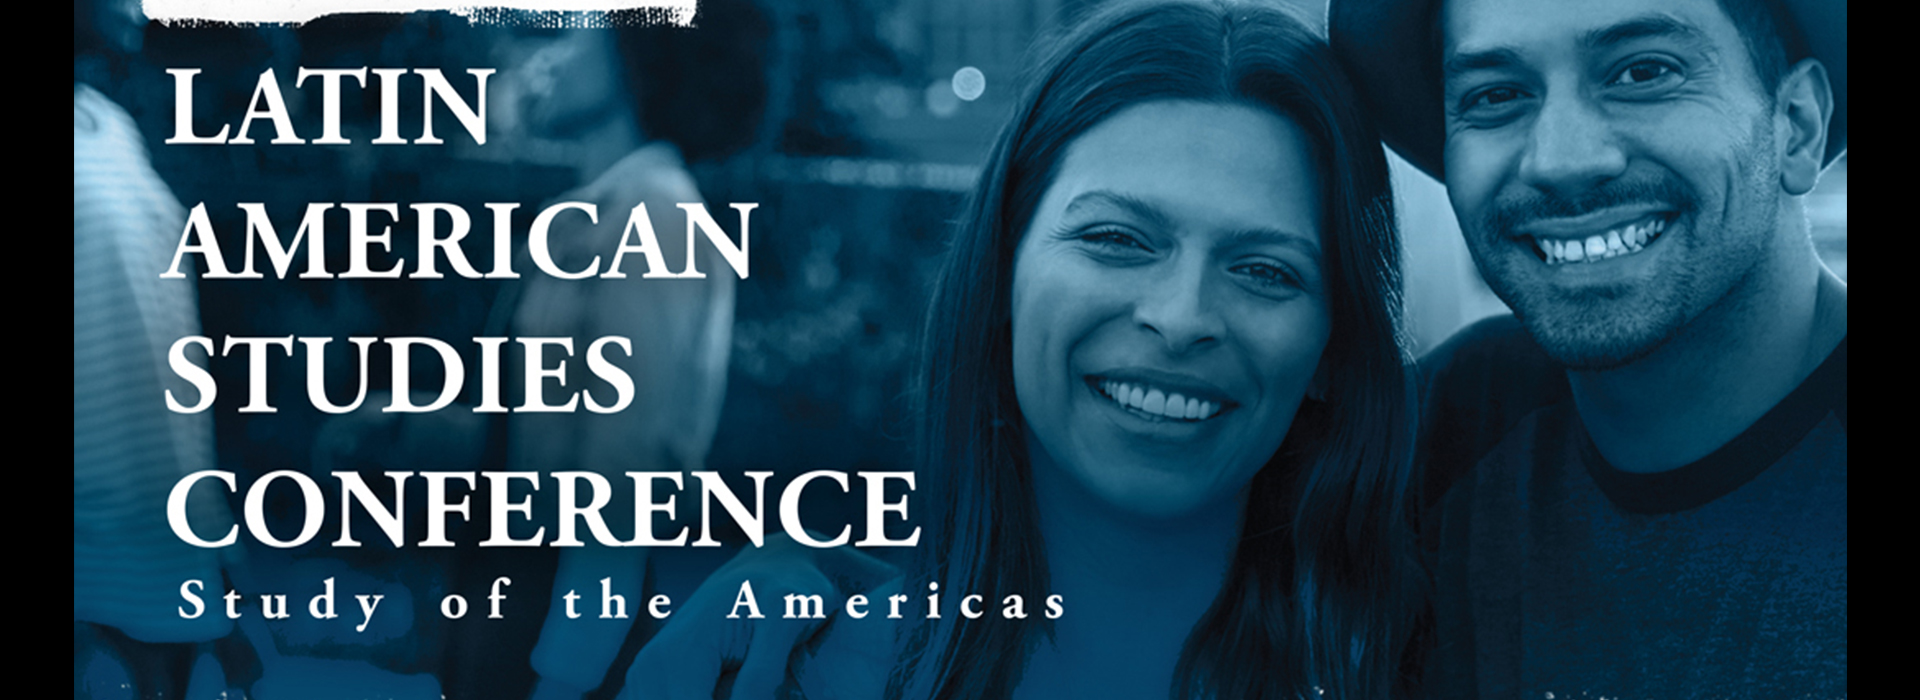 Latinx politics, experiences and expressions focus of CSUSB Latin American Studies Conference